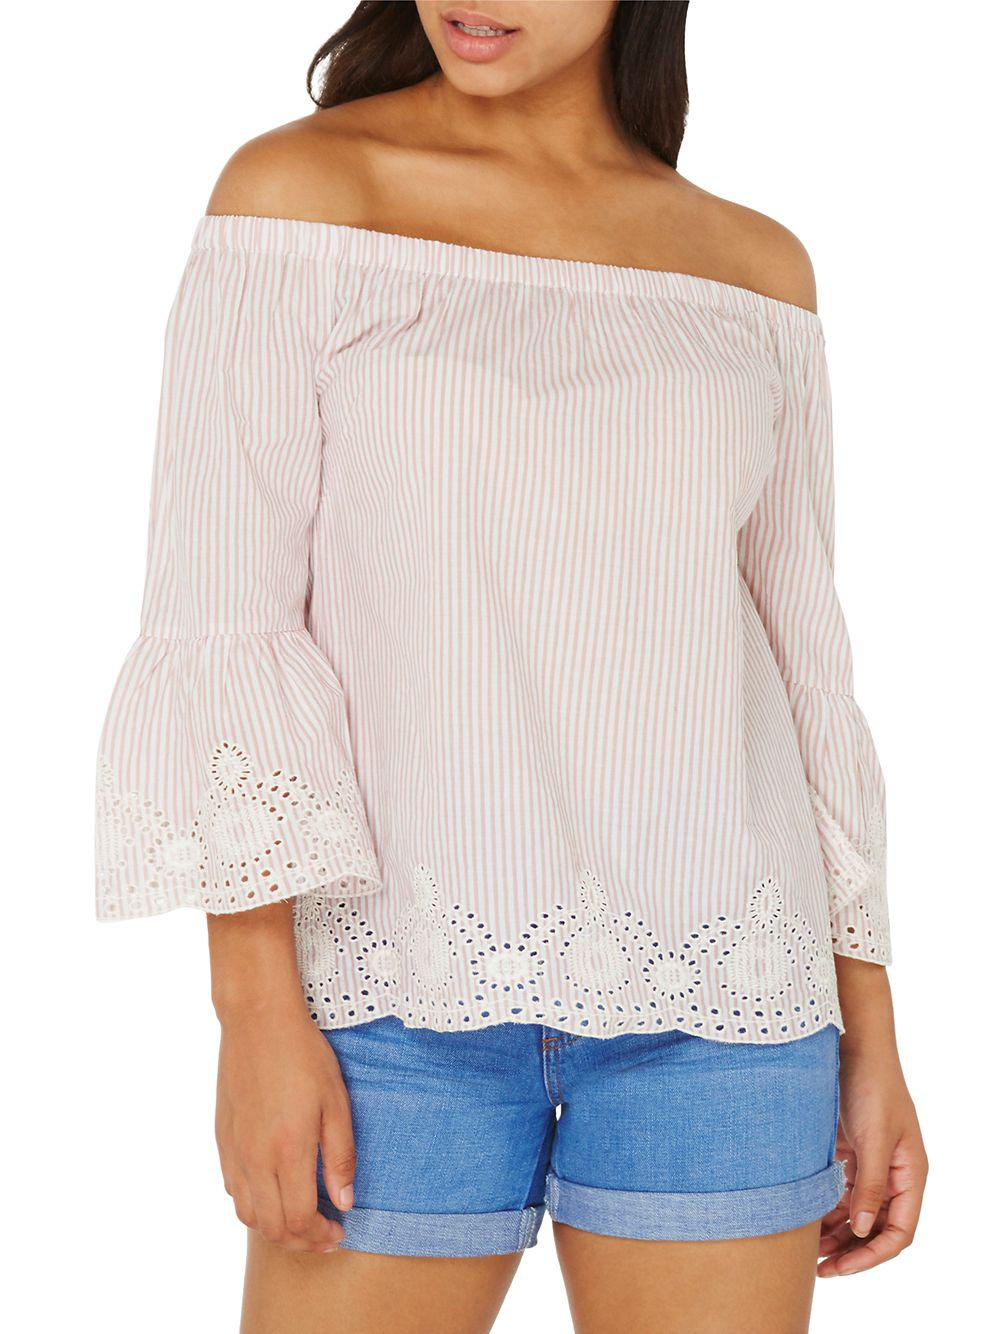 254faf87206864 Dorothy Perkins. Women s Striped Broderie Bardot Top